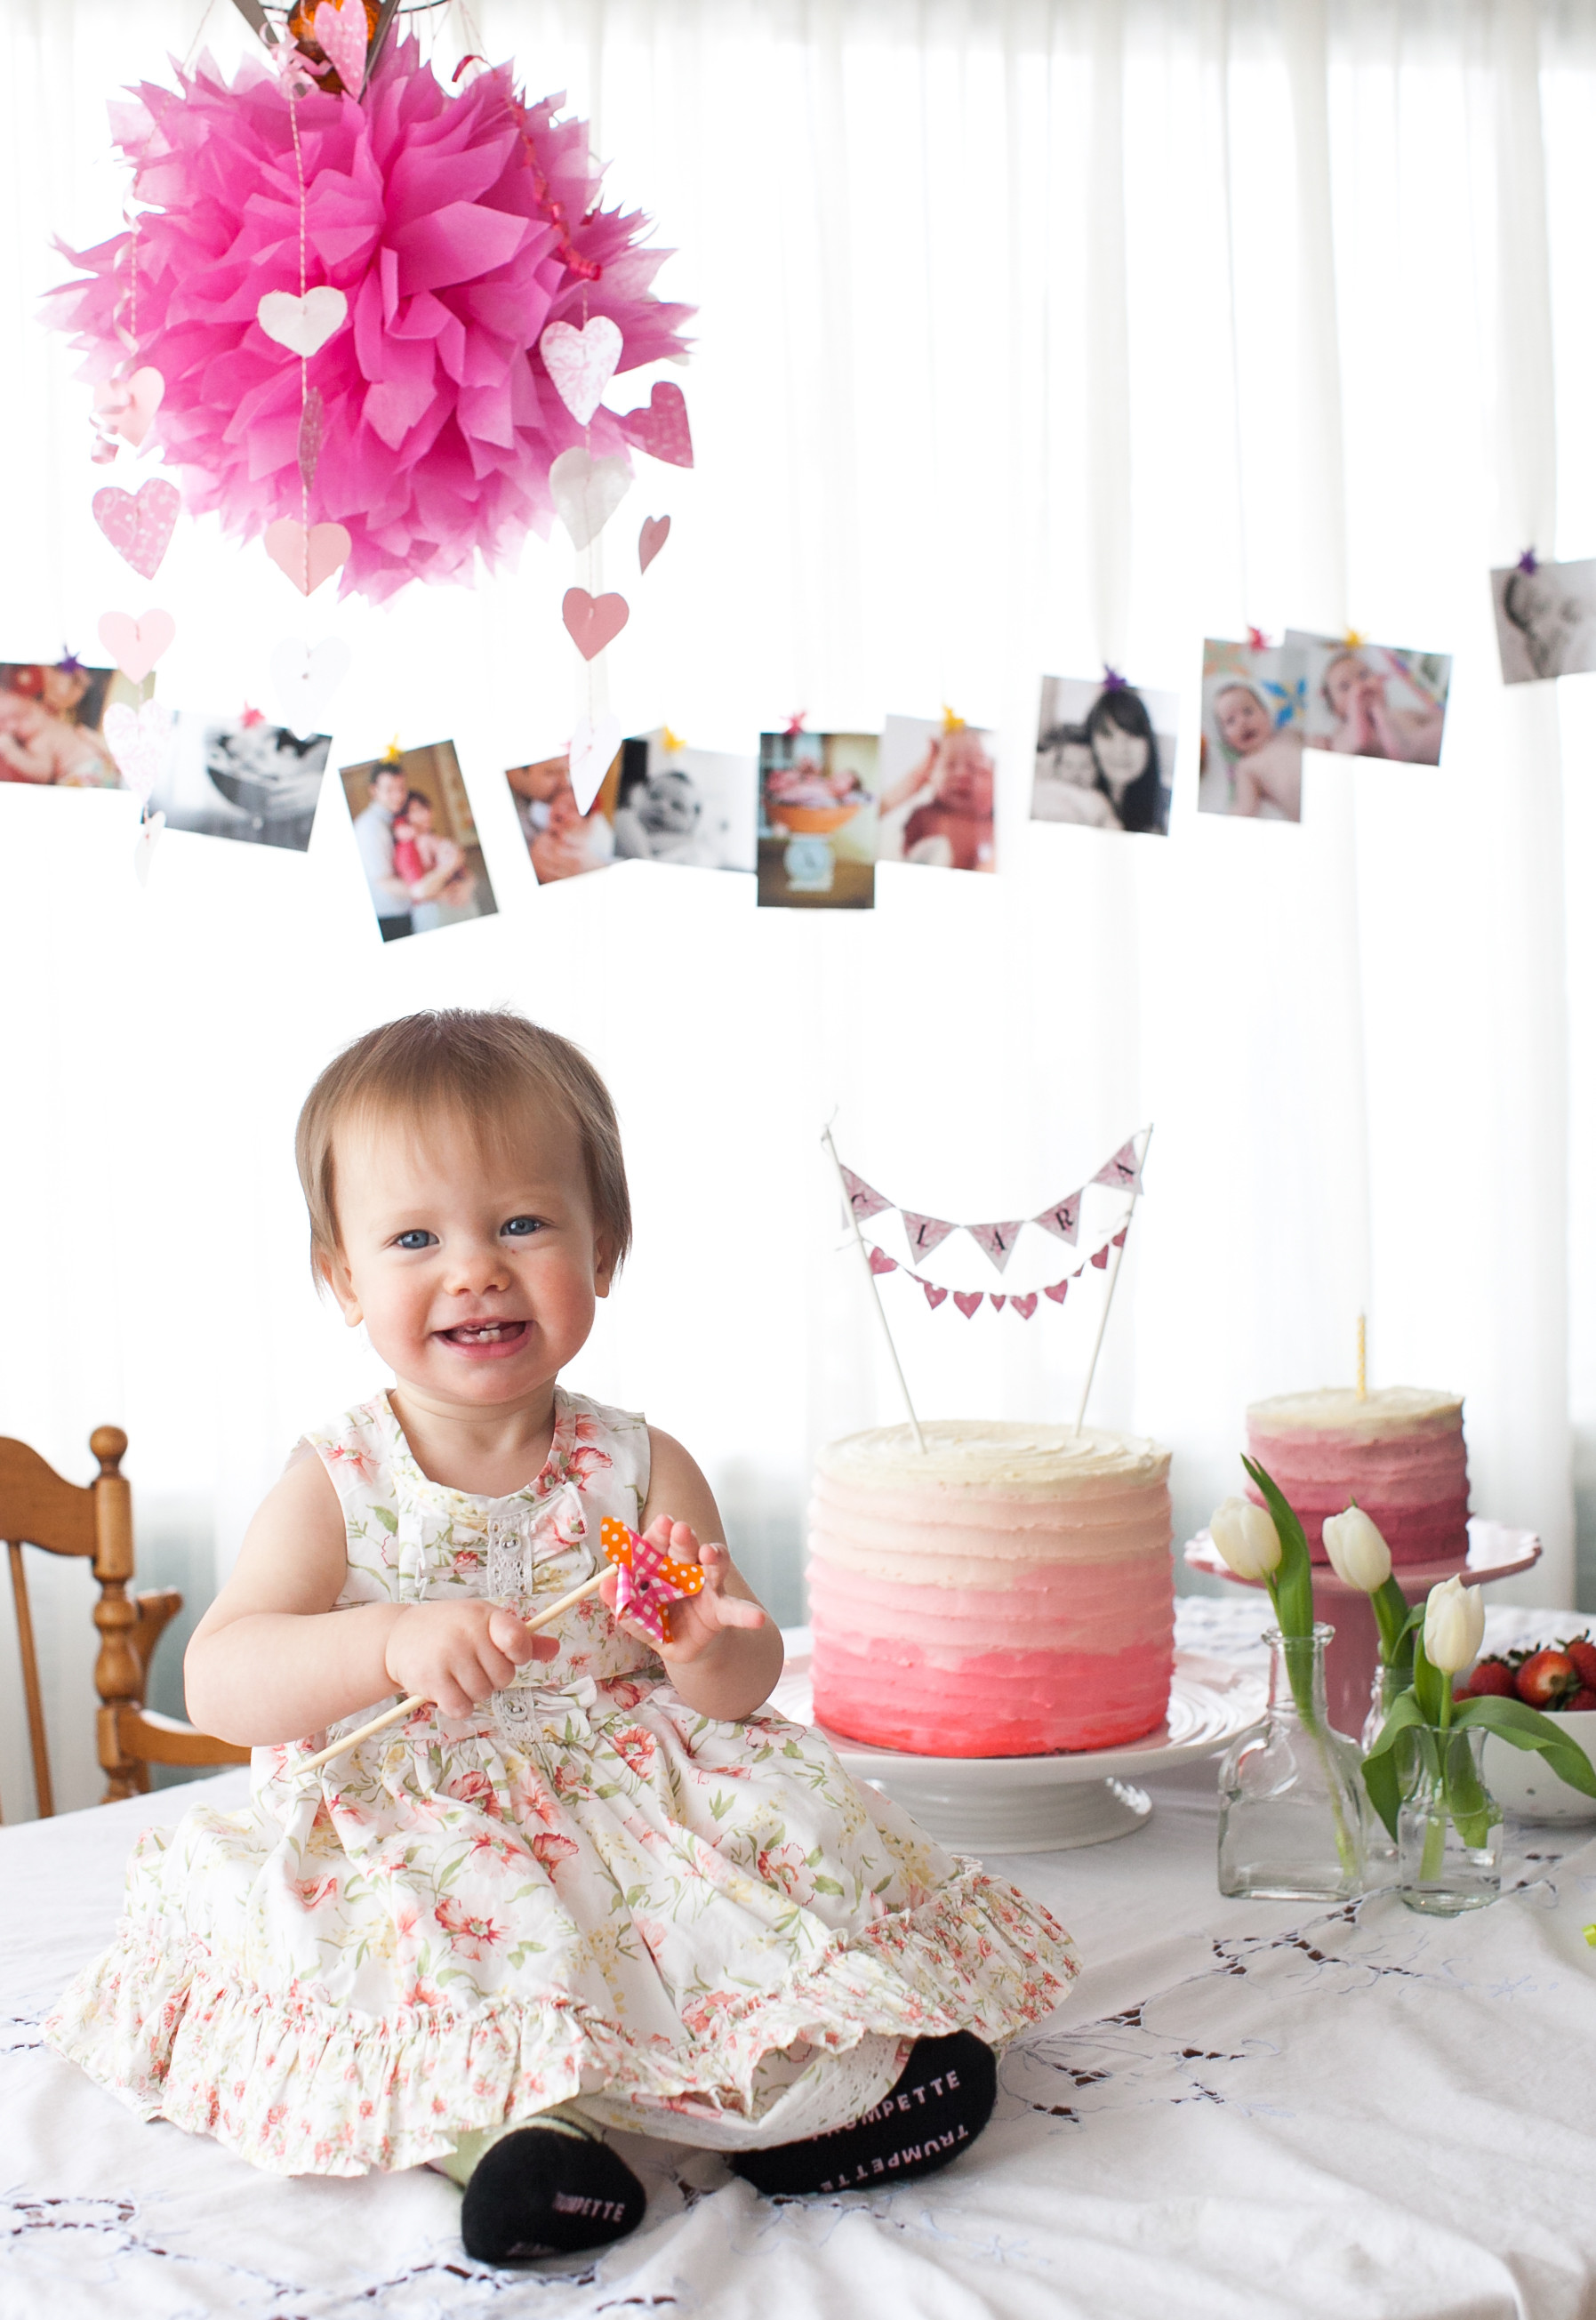 Best ideas about Baby First Birthday Party . Save or Pin First birthday party ideas recipe Apple Spice Cake with Now.